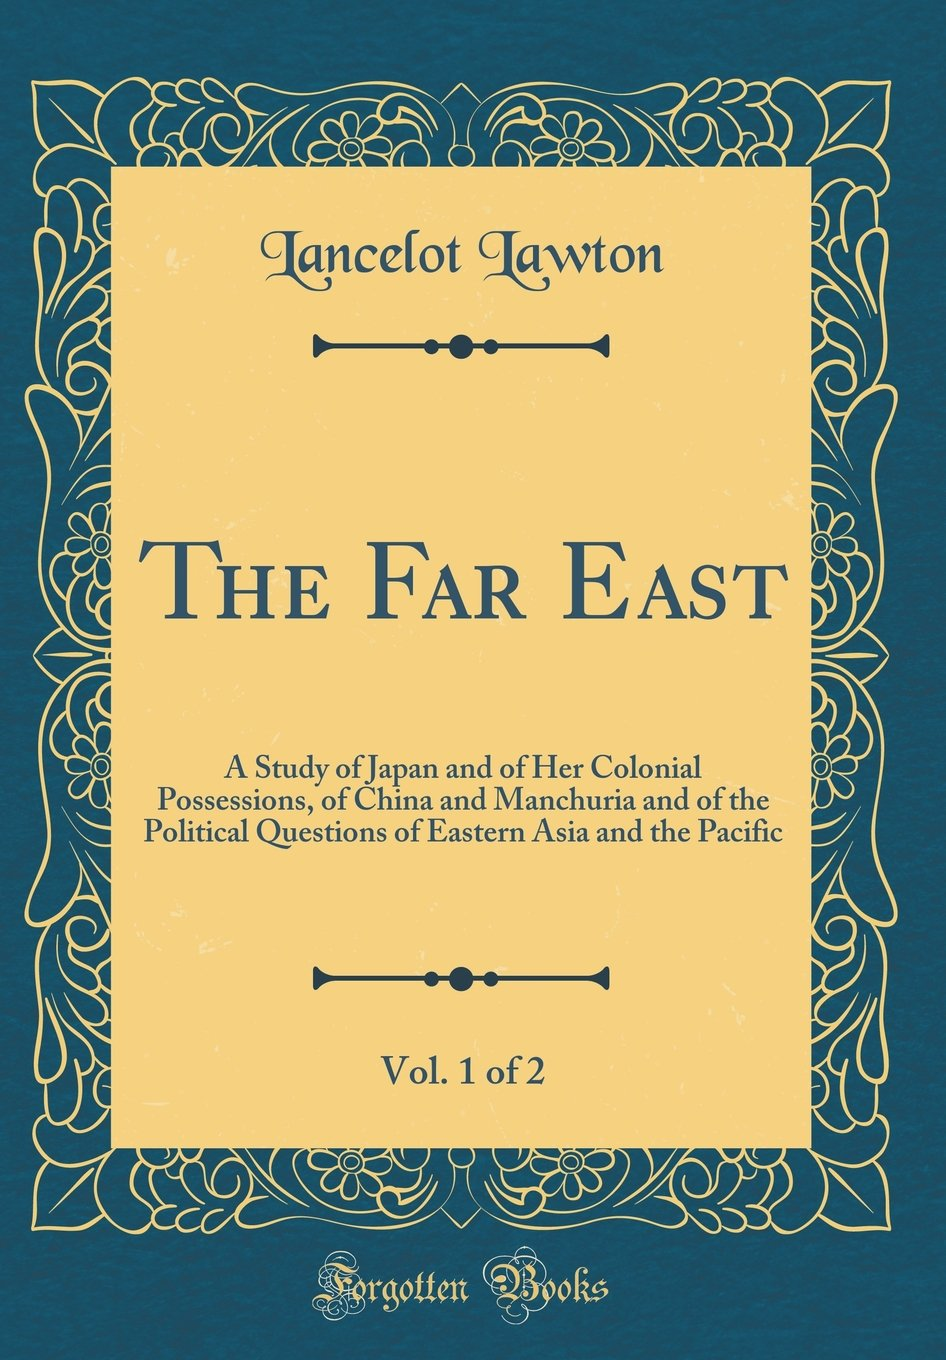 Download The Far East, Vol. 1 of 2: A Study of Japan and of Her Colonial Possessions, of China and Manchuria and of the Political Questions of Eastern Asia and the Pacific (Classic Reprint) pdf